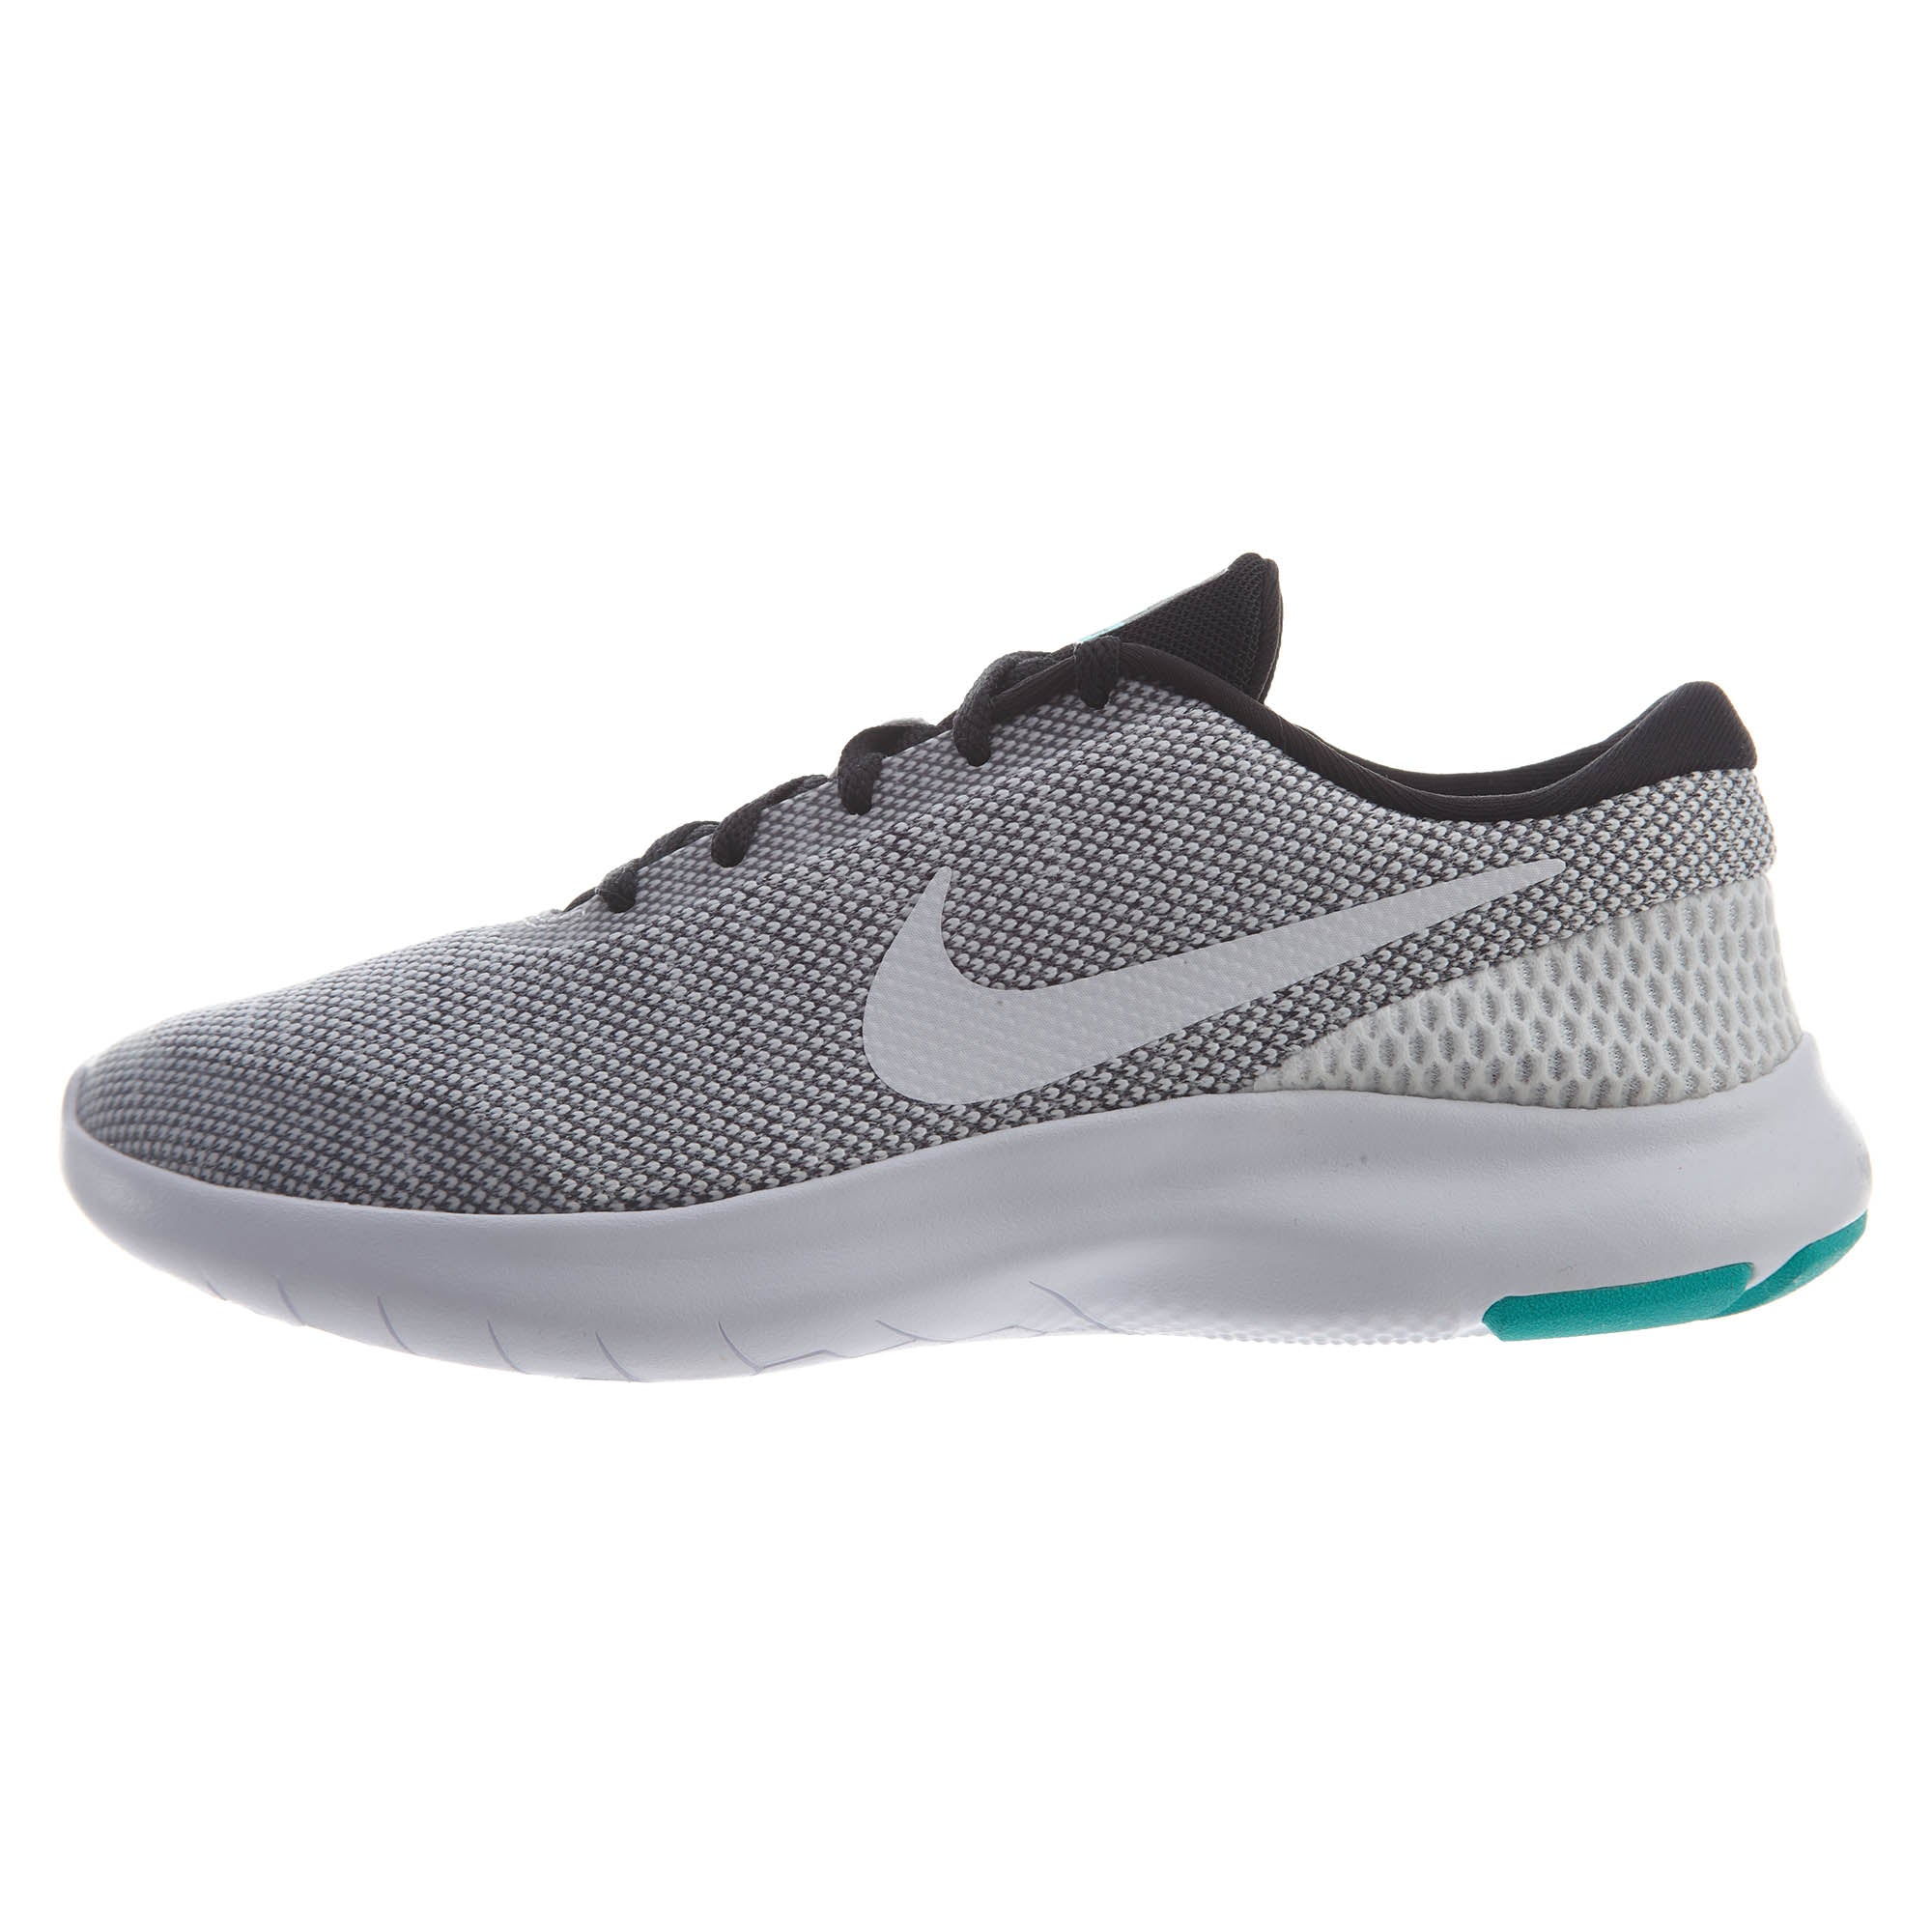 67ab5c4431527 Nike Flex Experience Rn 7 Womens Style   908996-013 – TheEagleShoes